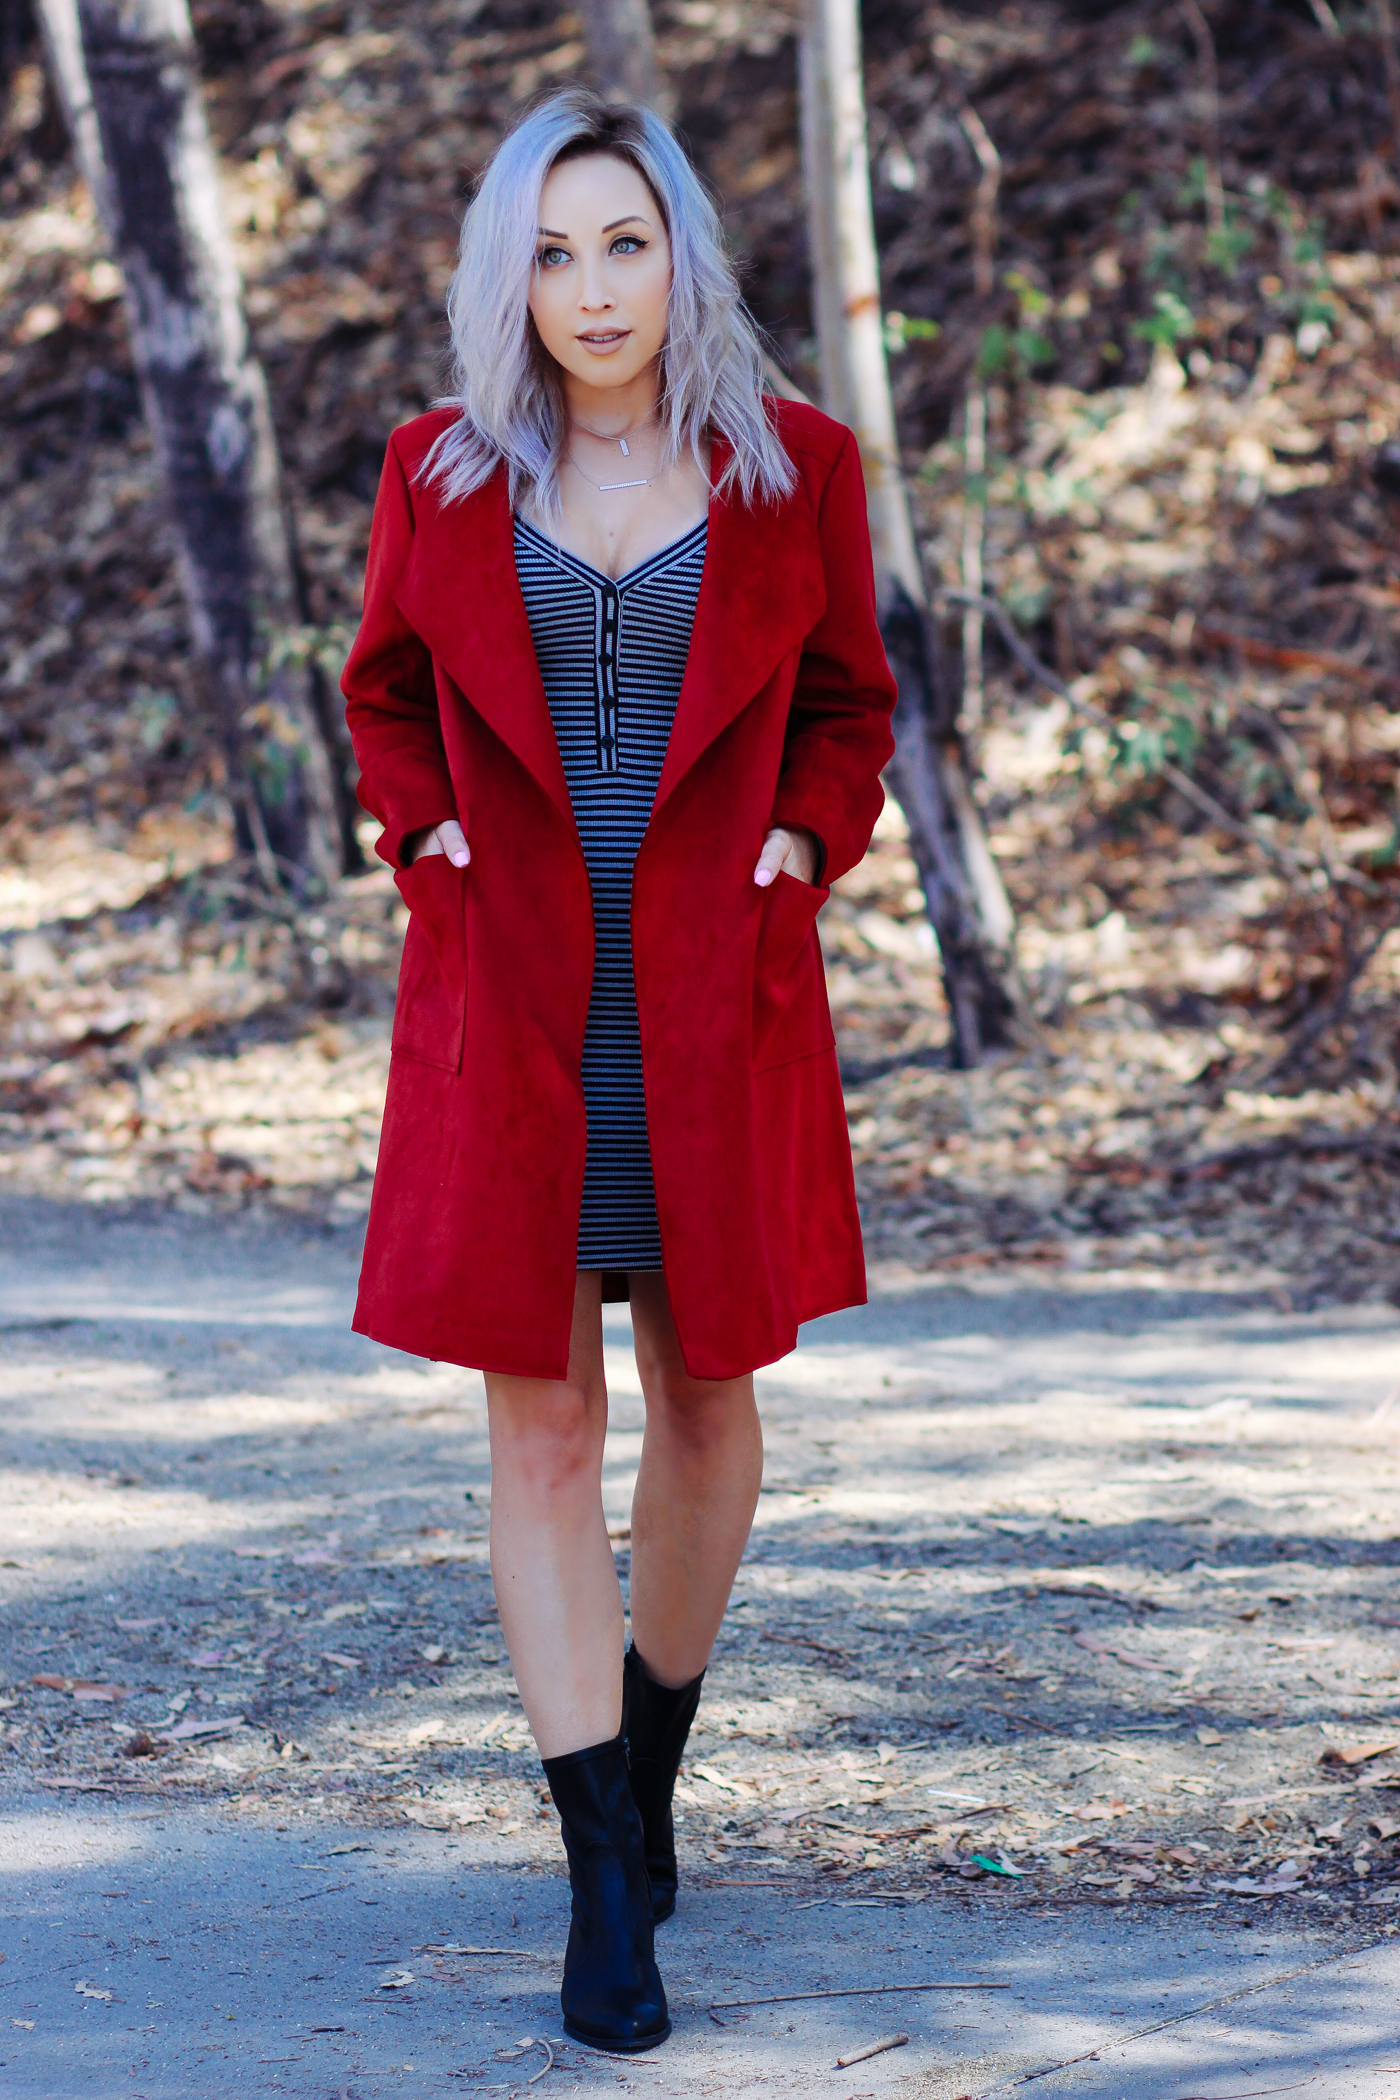 Blondie in the City | Red Coat, Striped Dress @justfabonline | Black Booties @shoedazzle | Fall Fashion